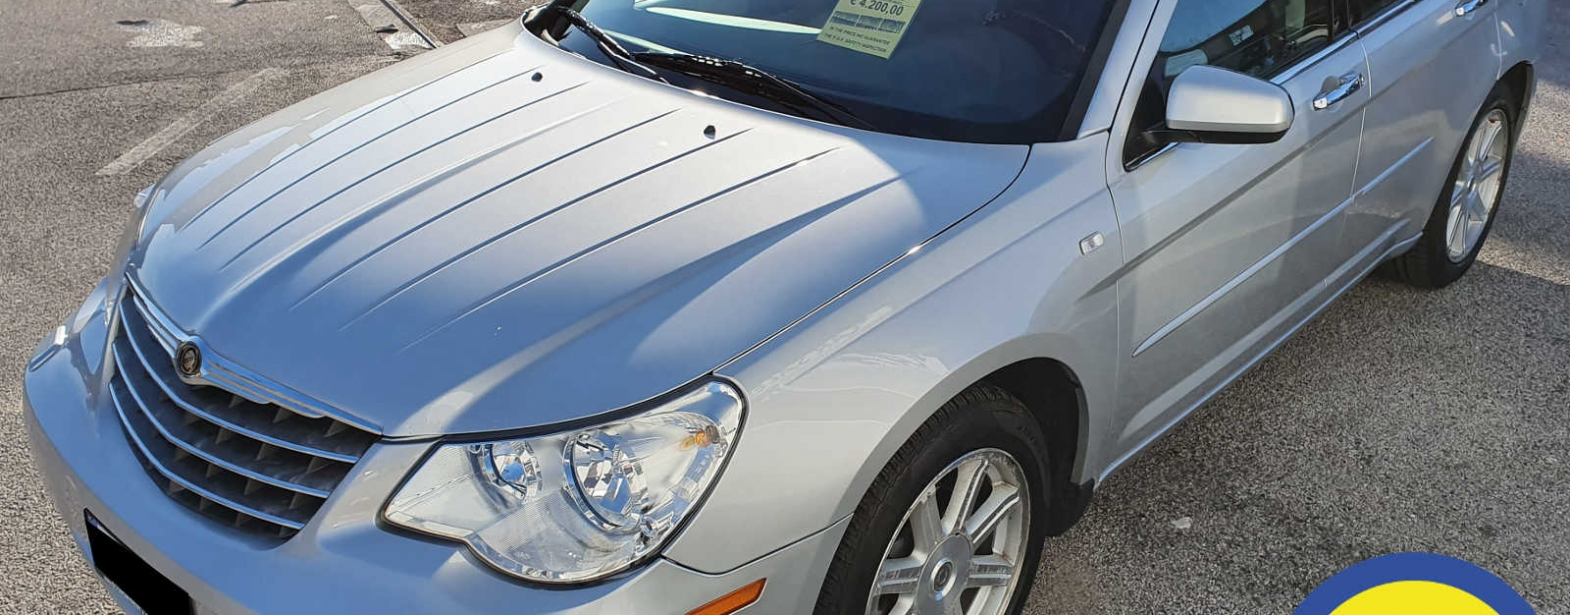 CHRYSLER SEBRING FR